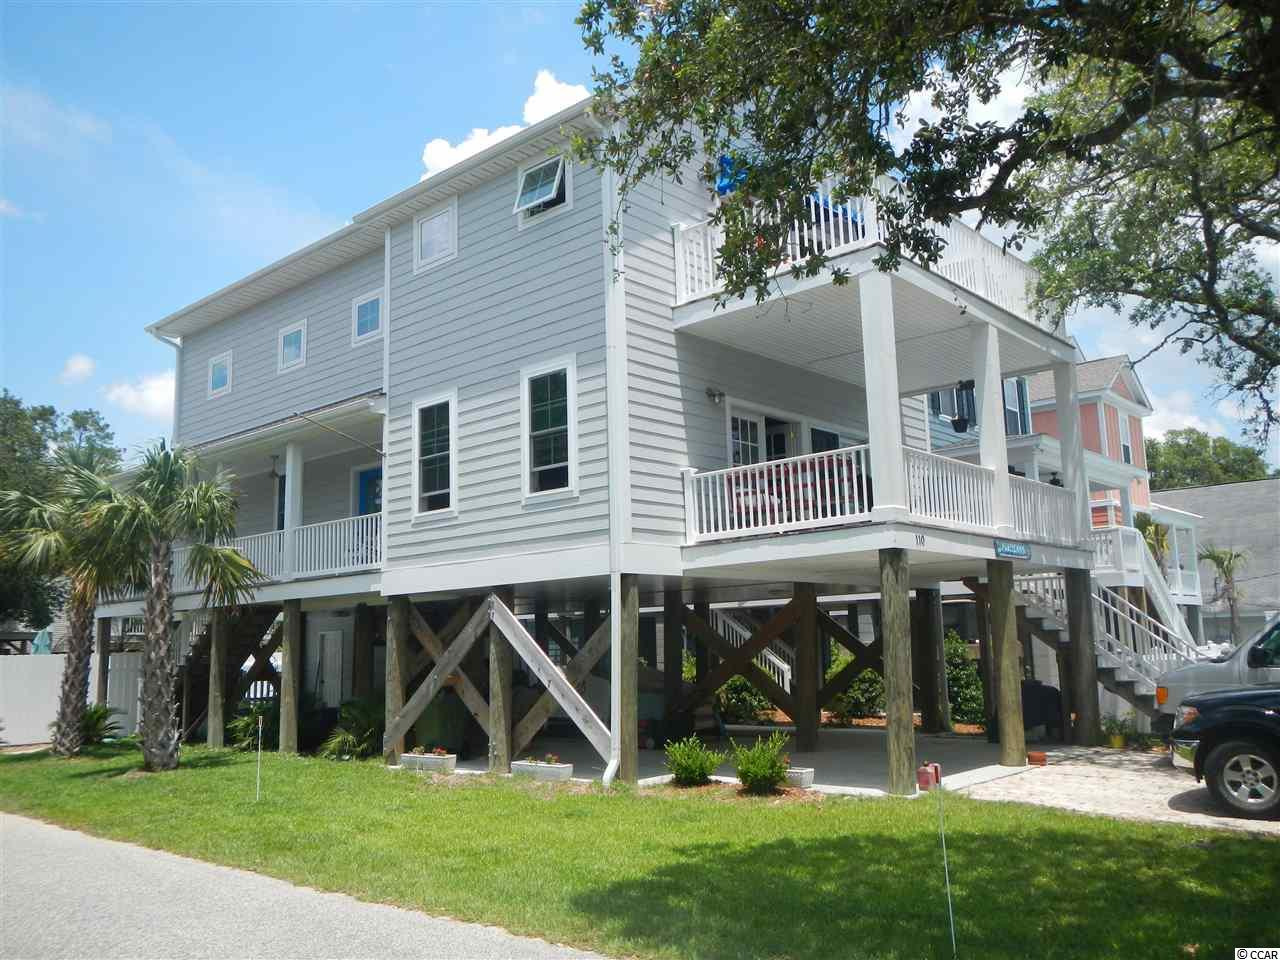 """Endless Summer"" is a Charleston style house located 600 ft from the ocean in a quiet section of Surfside, the ""family beach"". Home was custom built as a residence and has never been rented, but is zoned R3 for allowed weekly rentals. Quality construction and maintenance free features make this home the perfect family retreat. All 4 bedrooms have private baths, a separate TV room could be used as a 5th bedroom. A large living room is perfect for entertaining.  A corner lot and  an oversized pool enhance the desirable location of this home located near the pier, library, parks and tennis courts. Footages are approximate and buyer should verify"